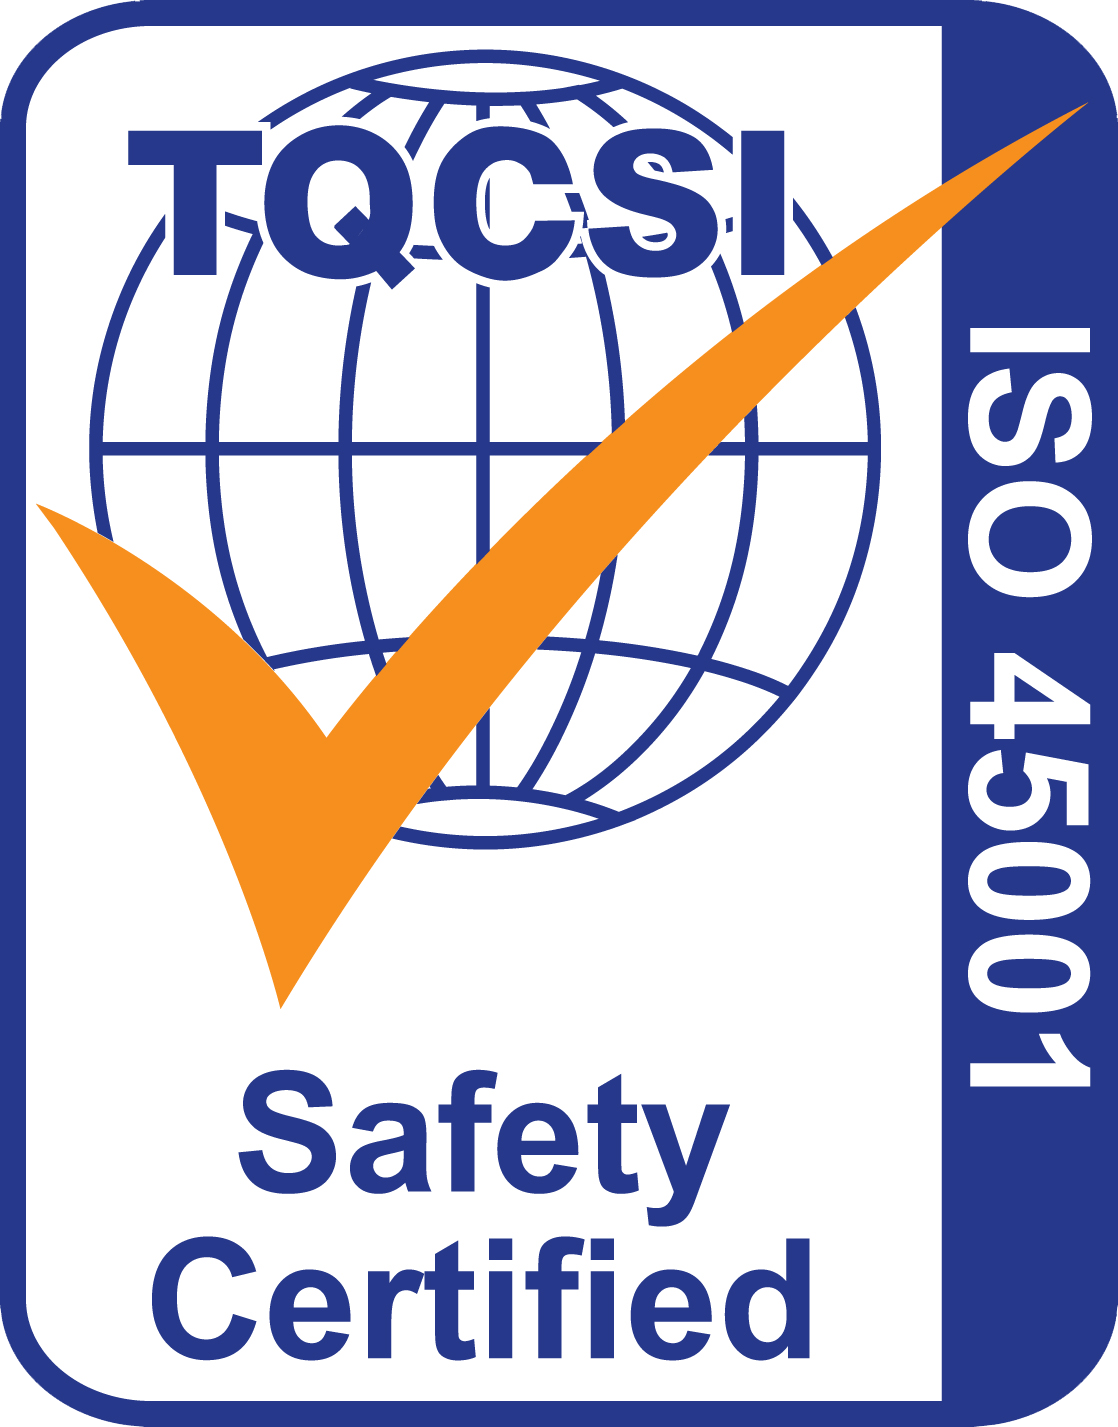 iso certification management systems 9001 14001 45001 27001 www tqcsi com